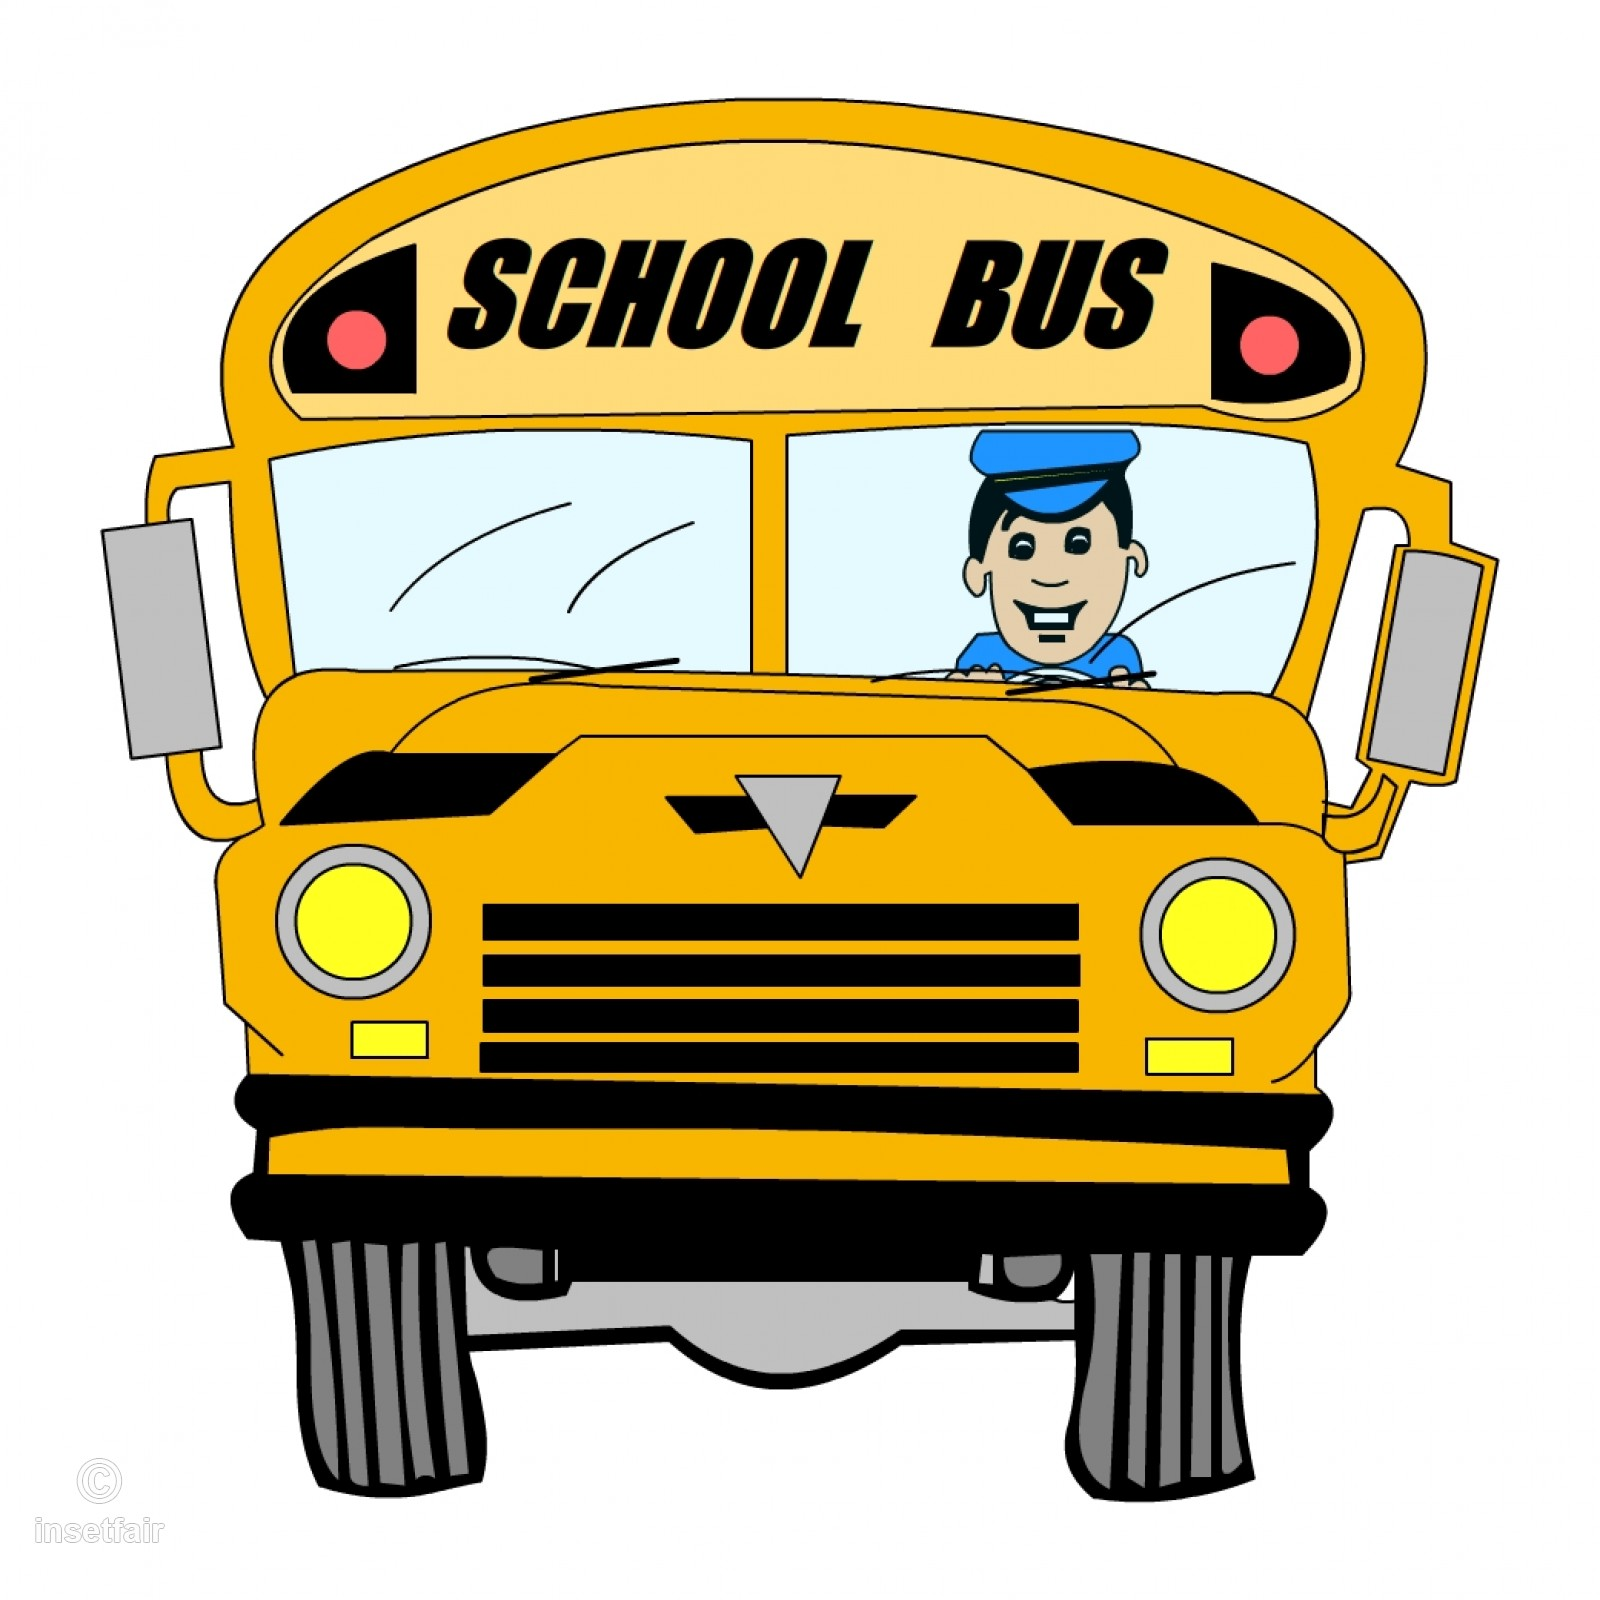 Bus driver clipart clip art black and white library Cartoon school bus with driver clipart png image clip art black and white library